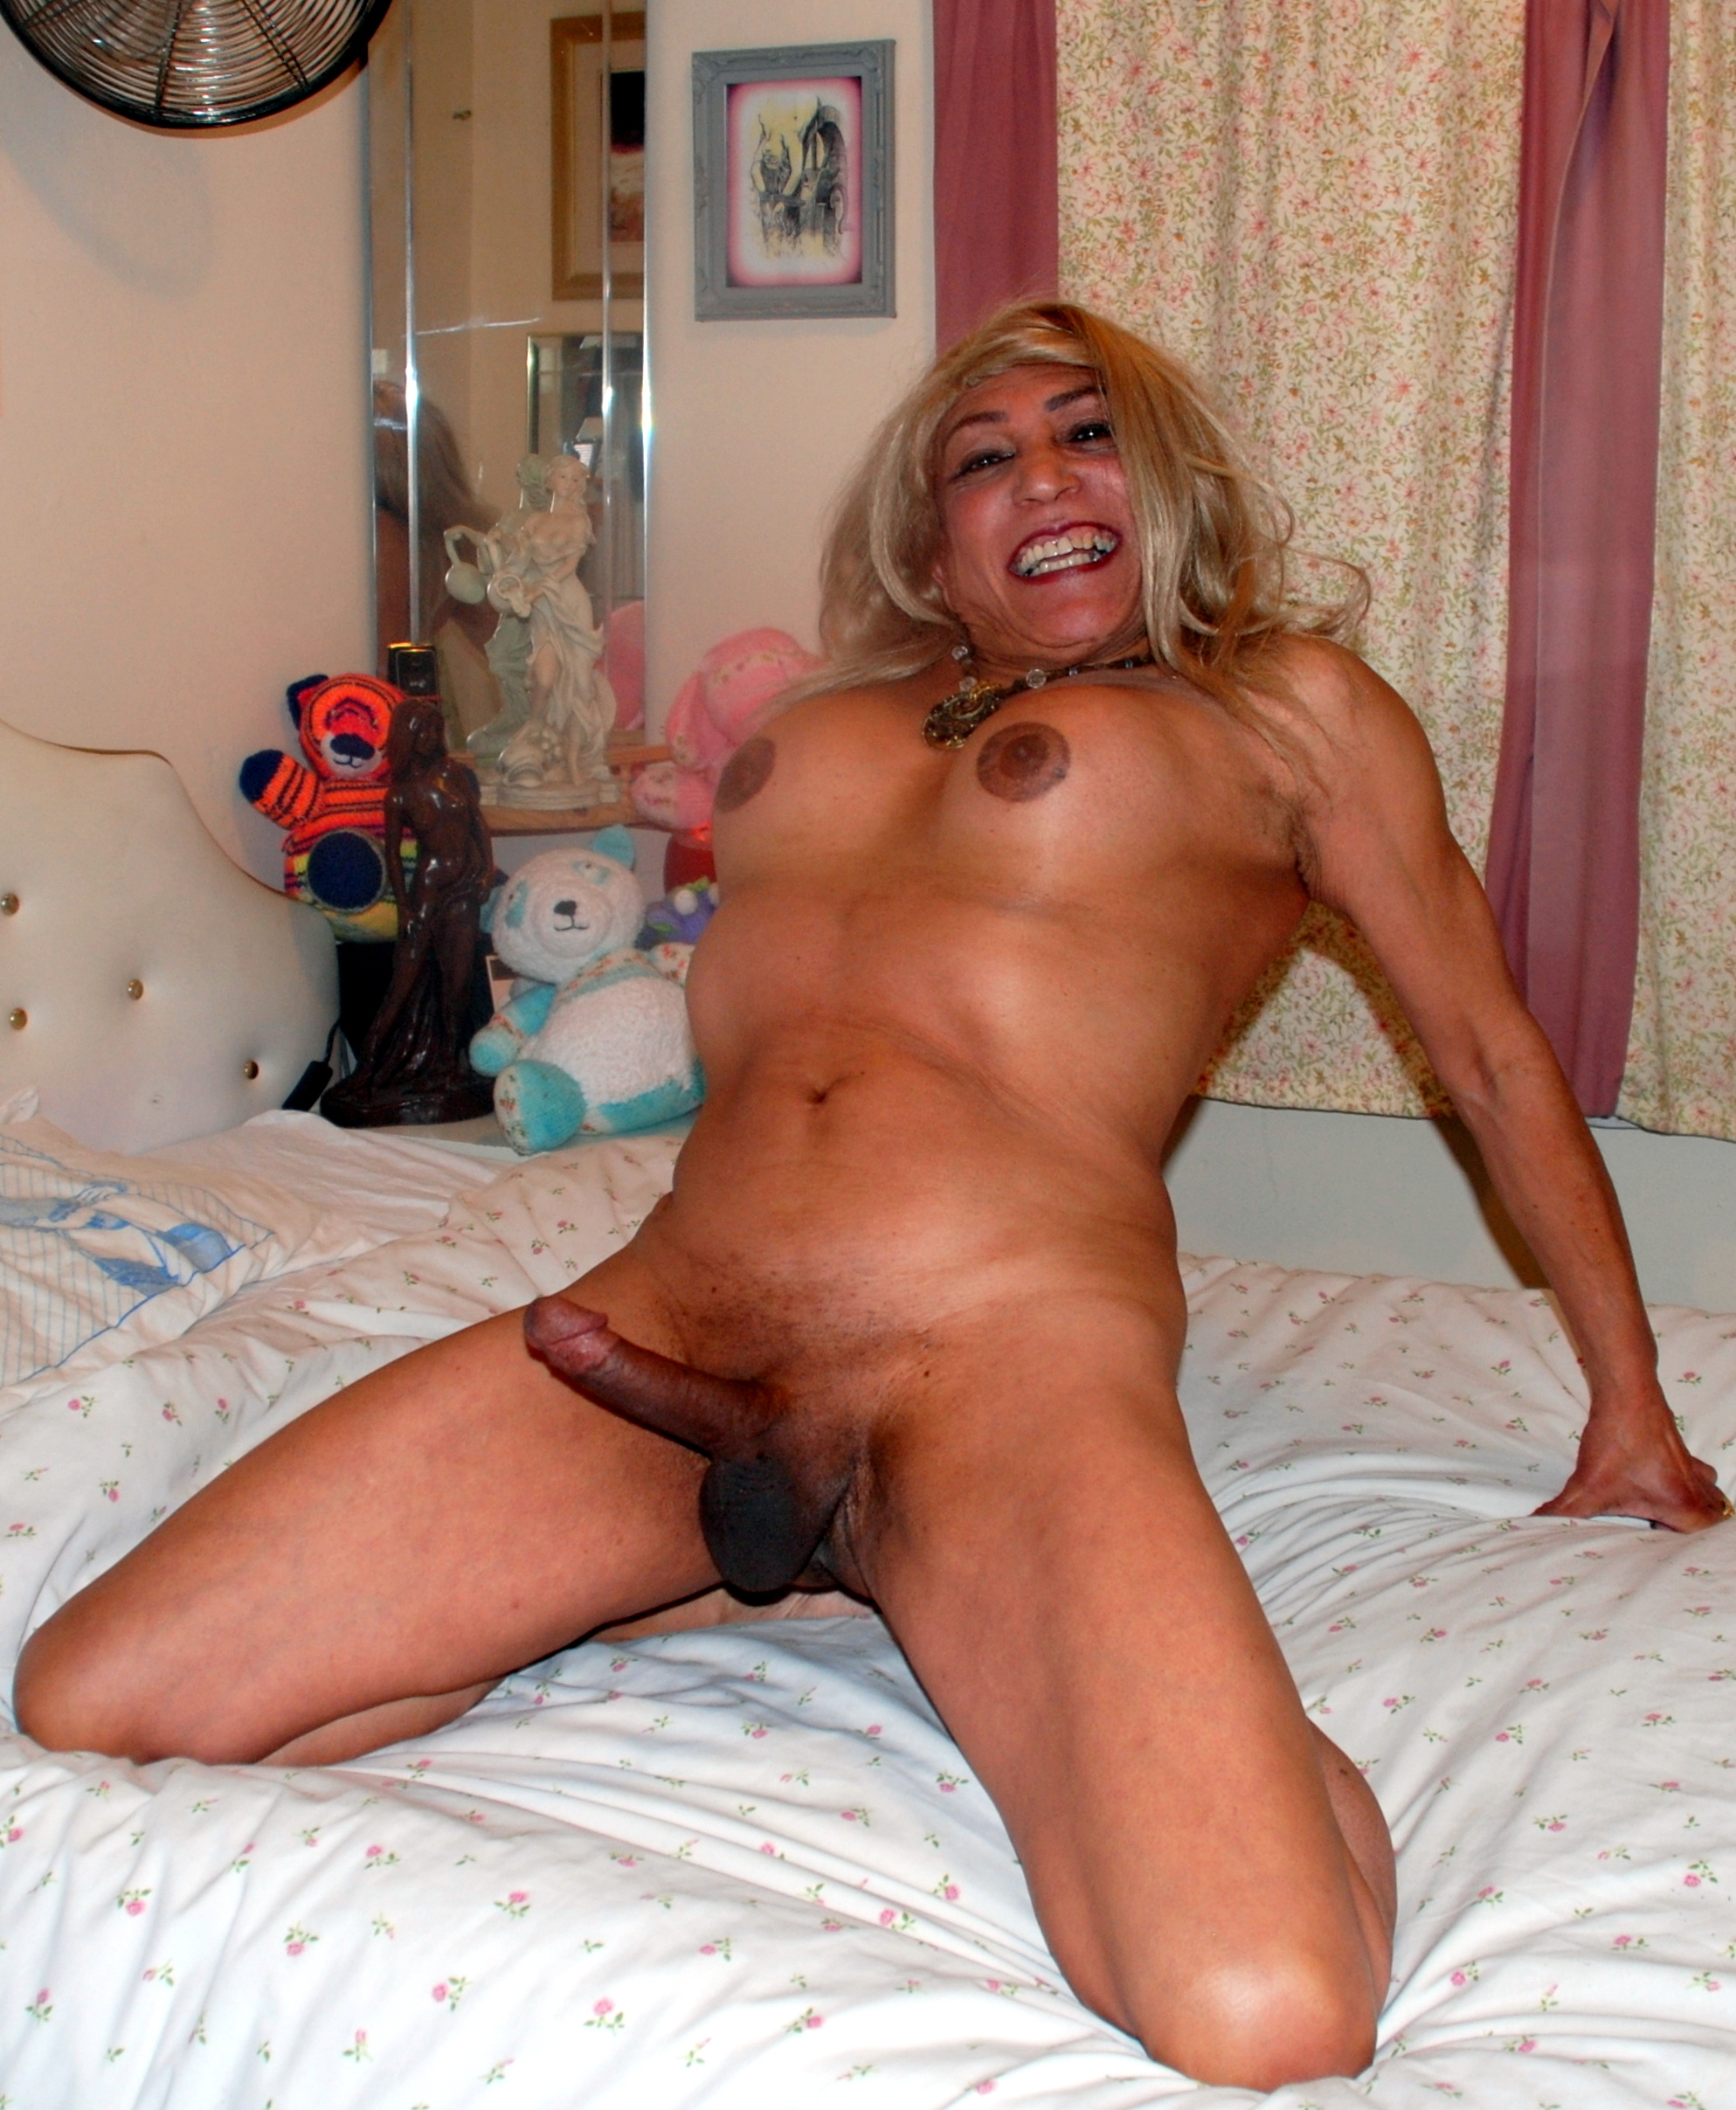 Annette schwarz takes cock and balls